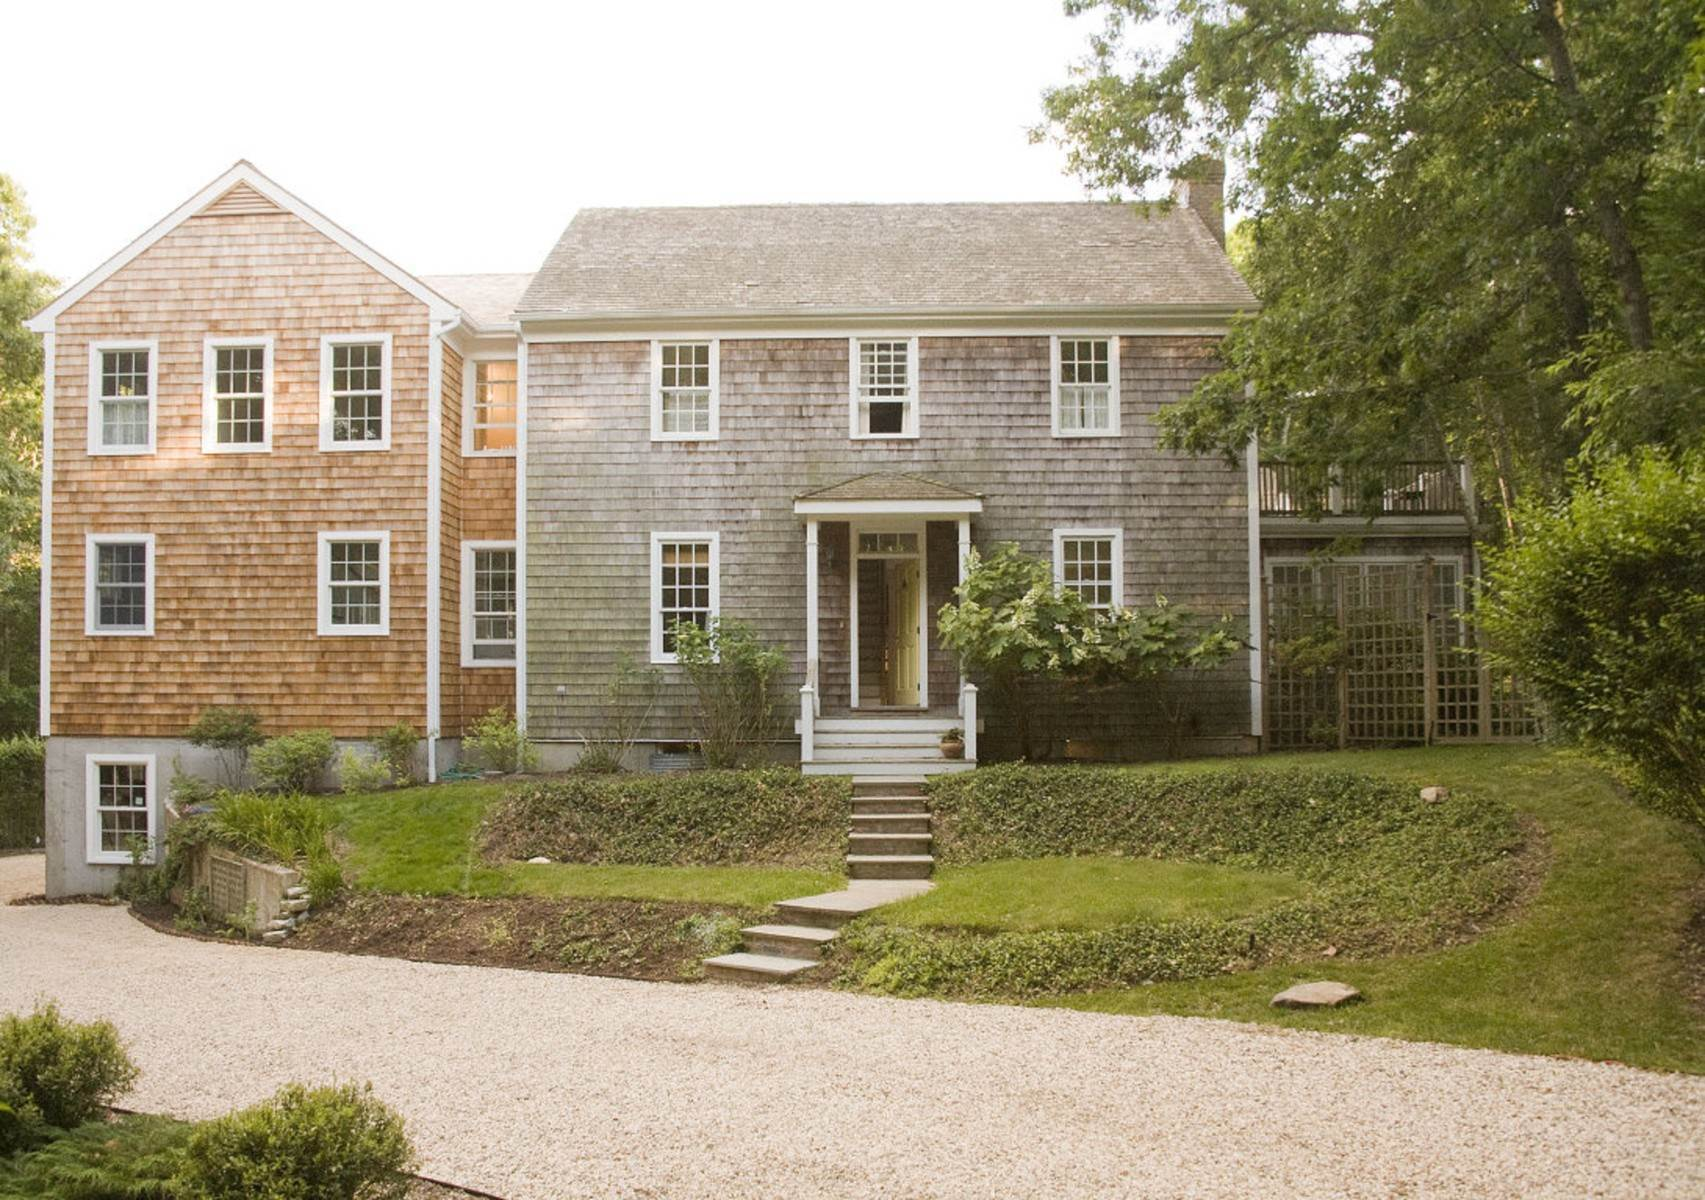 Single Family Home at Great Bridgehampton Neighborhood Bridgehampton, NY 11932